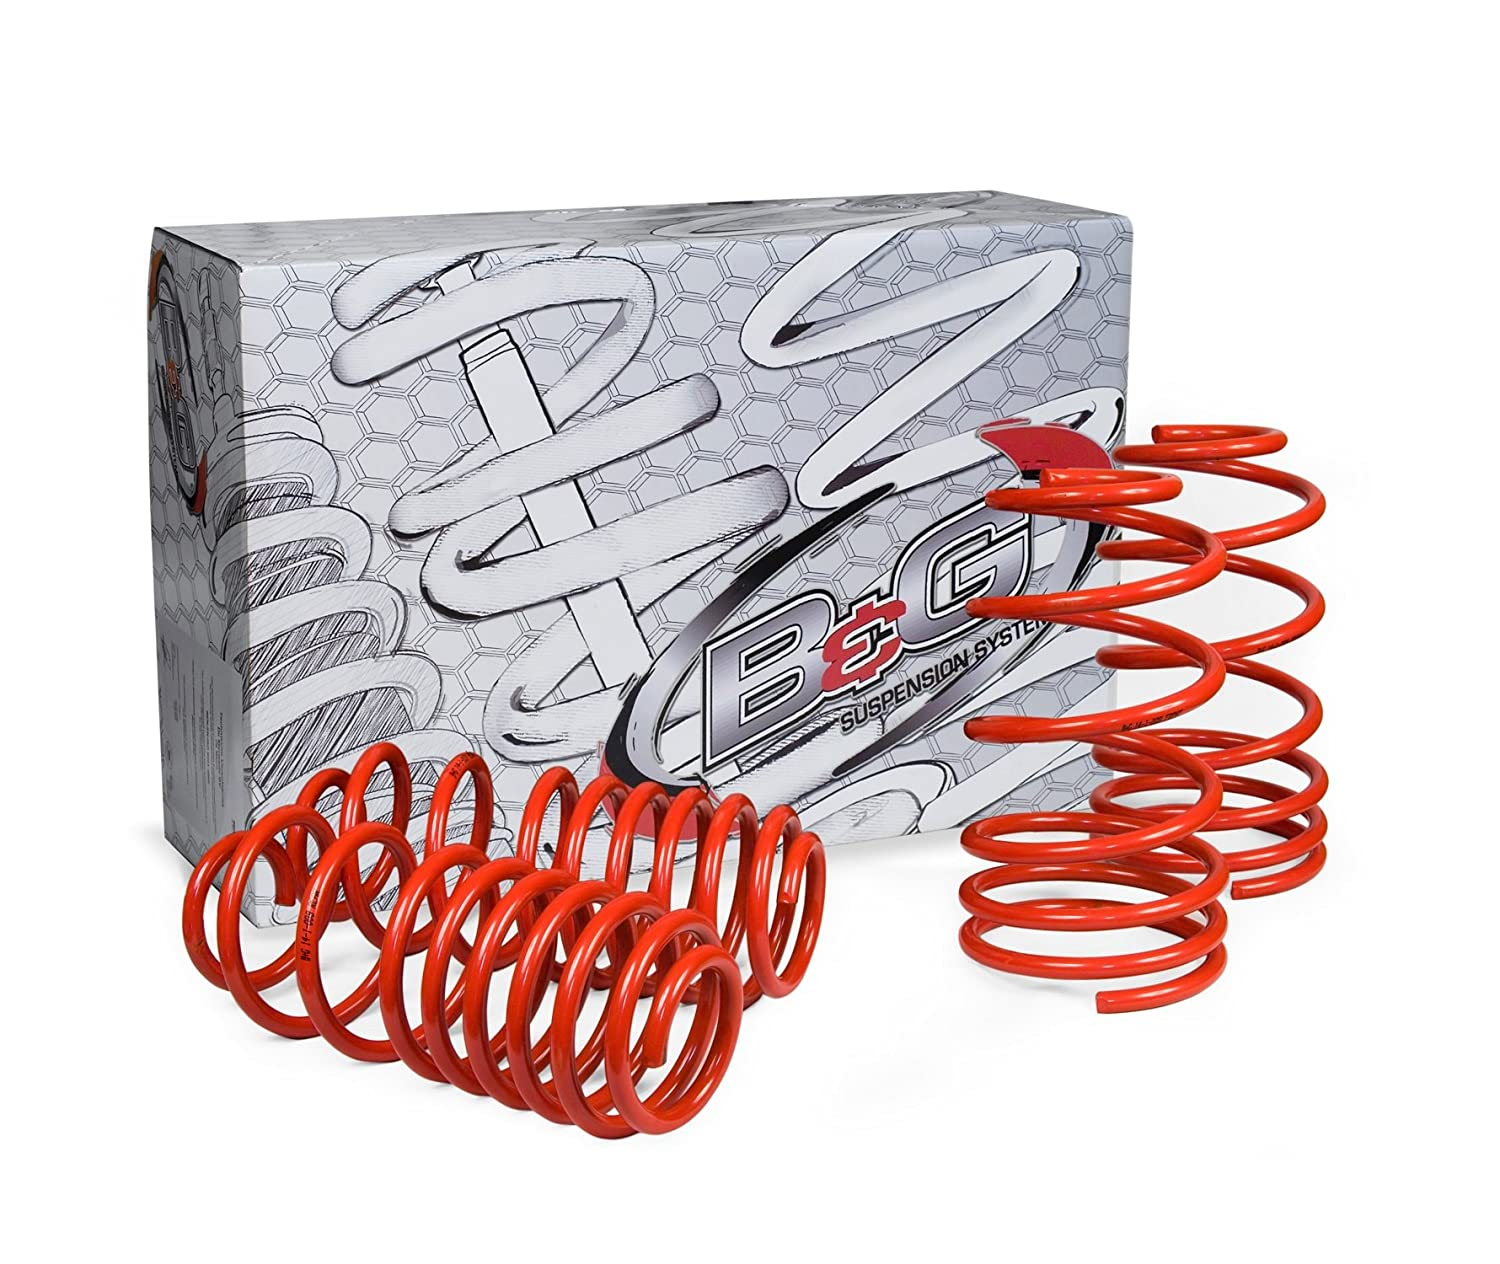 B/&G Suspension Systems 88.1.005 S2 Sport Vehicle Lowering Spring